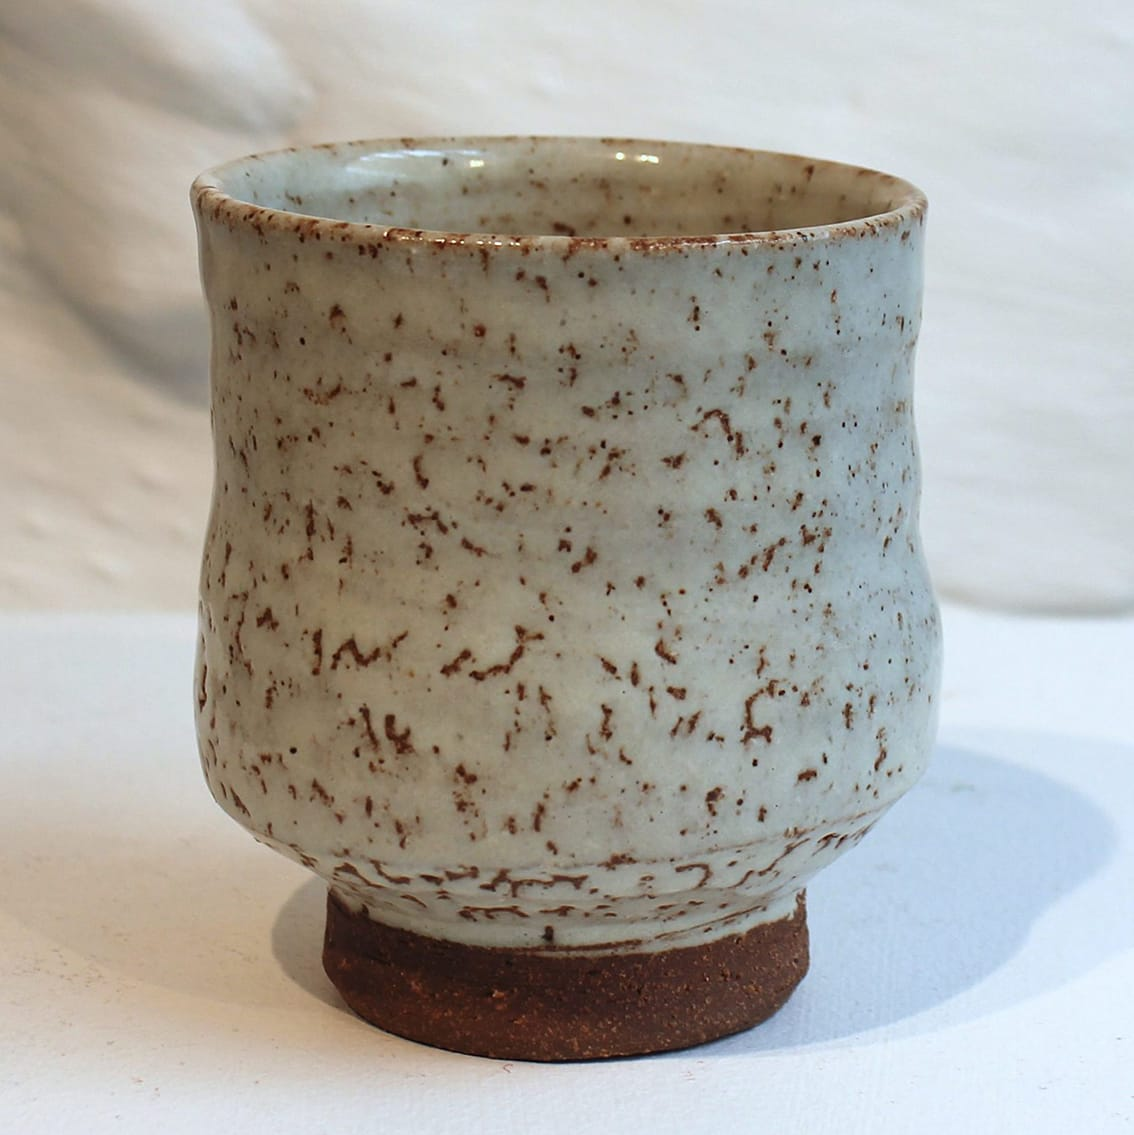 """<span class=""""link fancybox-details-link""""><a href=""""/artists/200-matthew-tyas/works/5461-matthew-tyas-tenmoku-shino-glaze-yunomi-2018/"""">View Detail Page</a></span><div class=""""artist""""><strong>Matthew Tyas</strong></div> <div class=""""title""""><em>Tenmoku Shino Glaze Yunomi</em>, 2018</div> <div class=""""signed_and_dated"""">stamped by the artist</div> <div class=""""medium"""">glazed thrown stoneware</div><div class=""""copyright_line"""">Copyright The Artist</div>"""